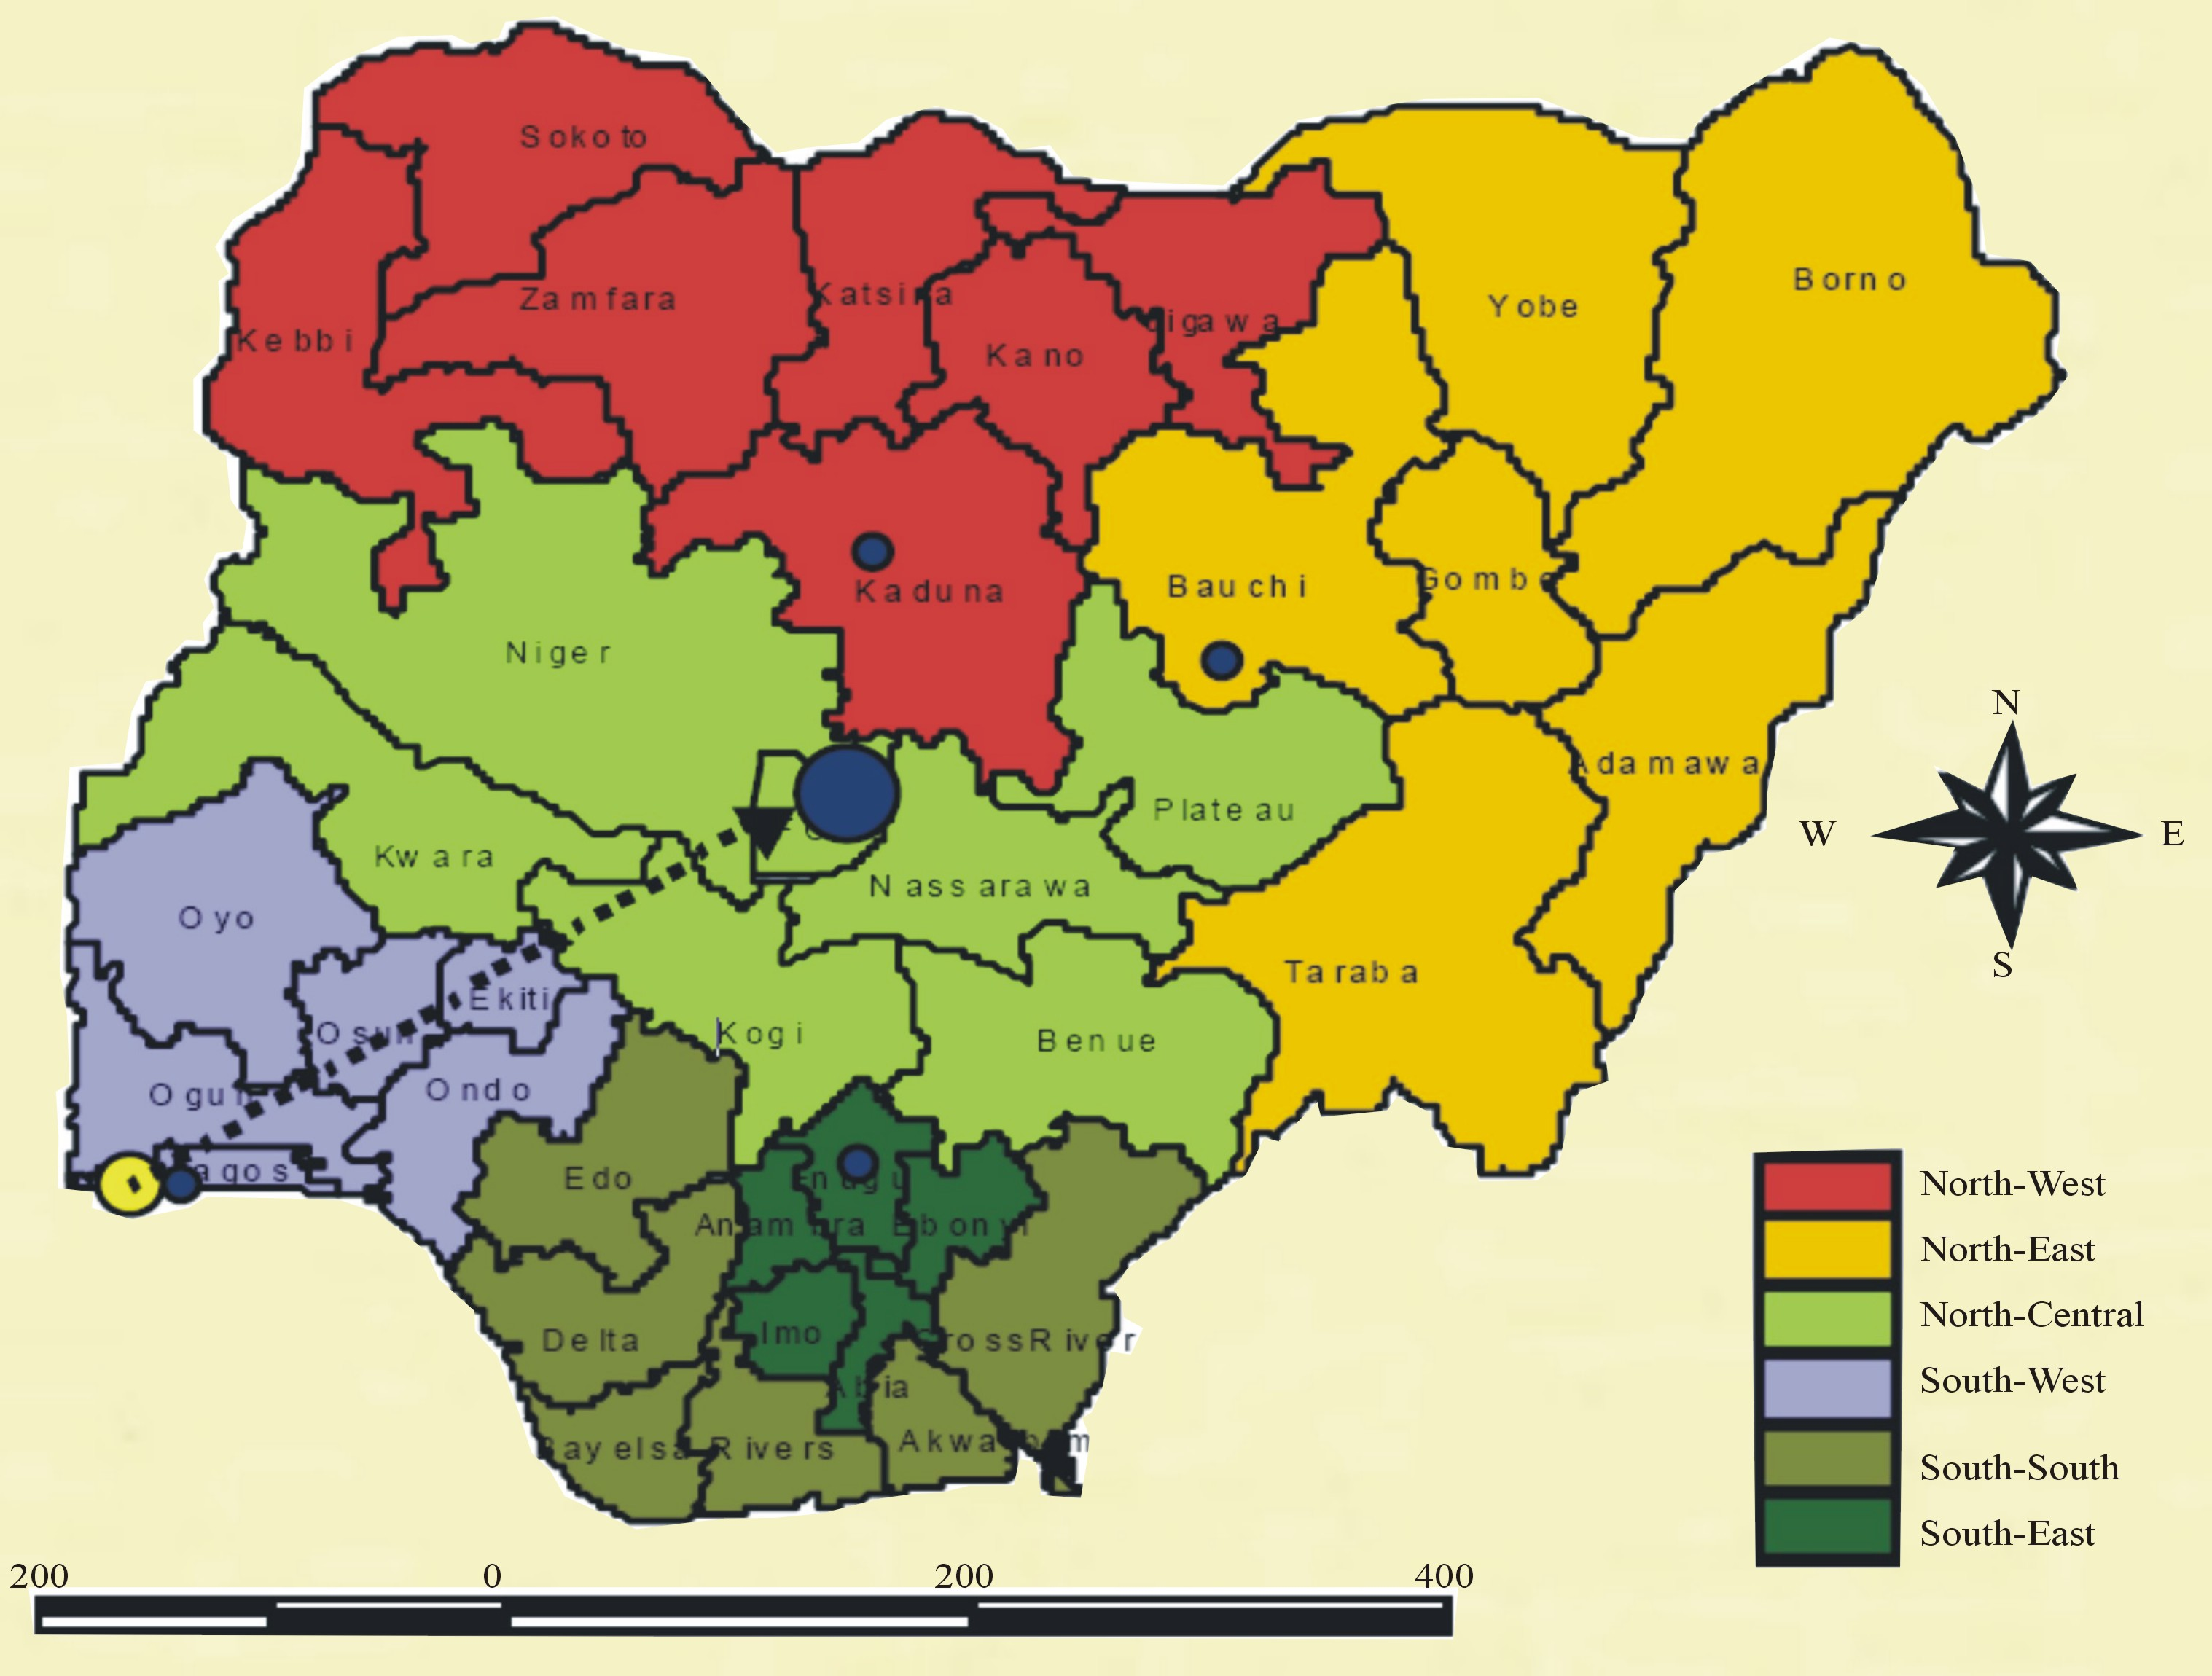 OPINION: WHY NIGERIA NEEDS TO BE RE-STRUCTURED | THEWILL